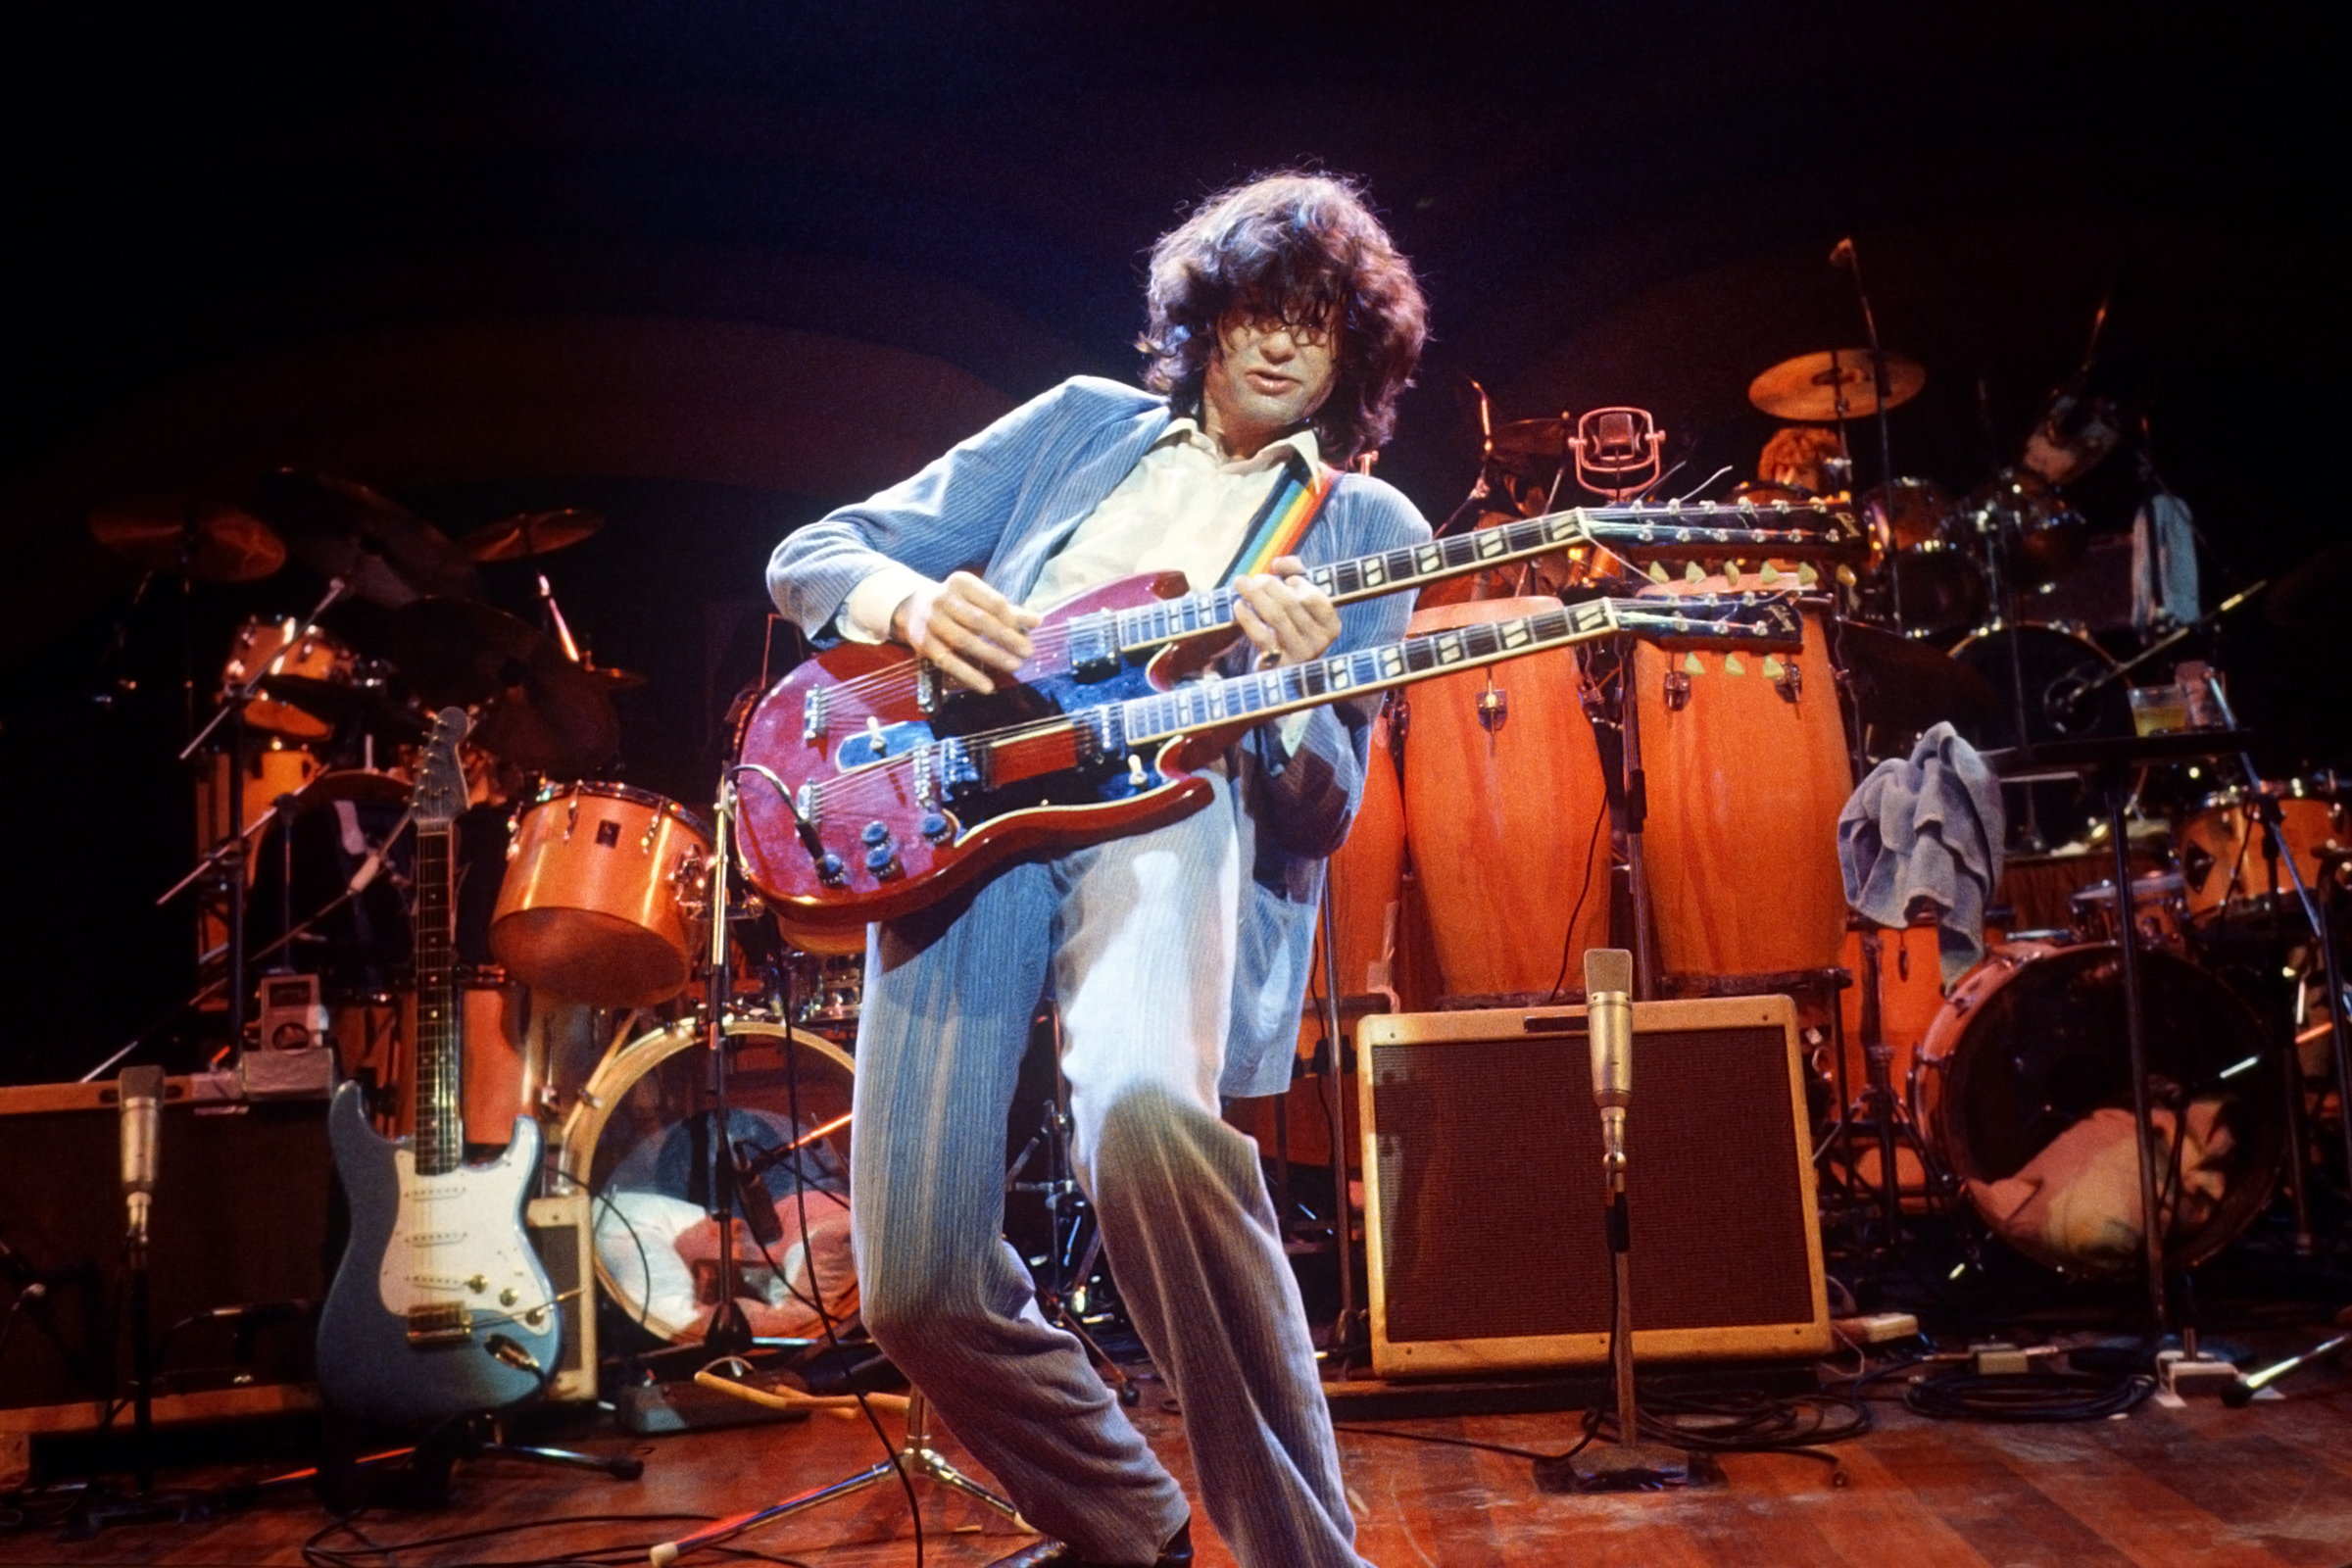 Jimmy Page Plays Instrumental 'Stairway To Heaven' In 1983